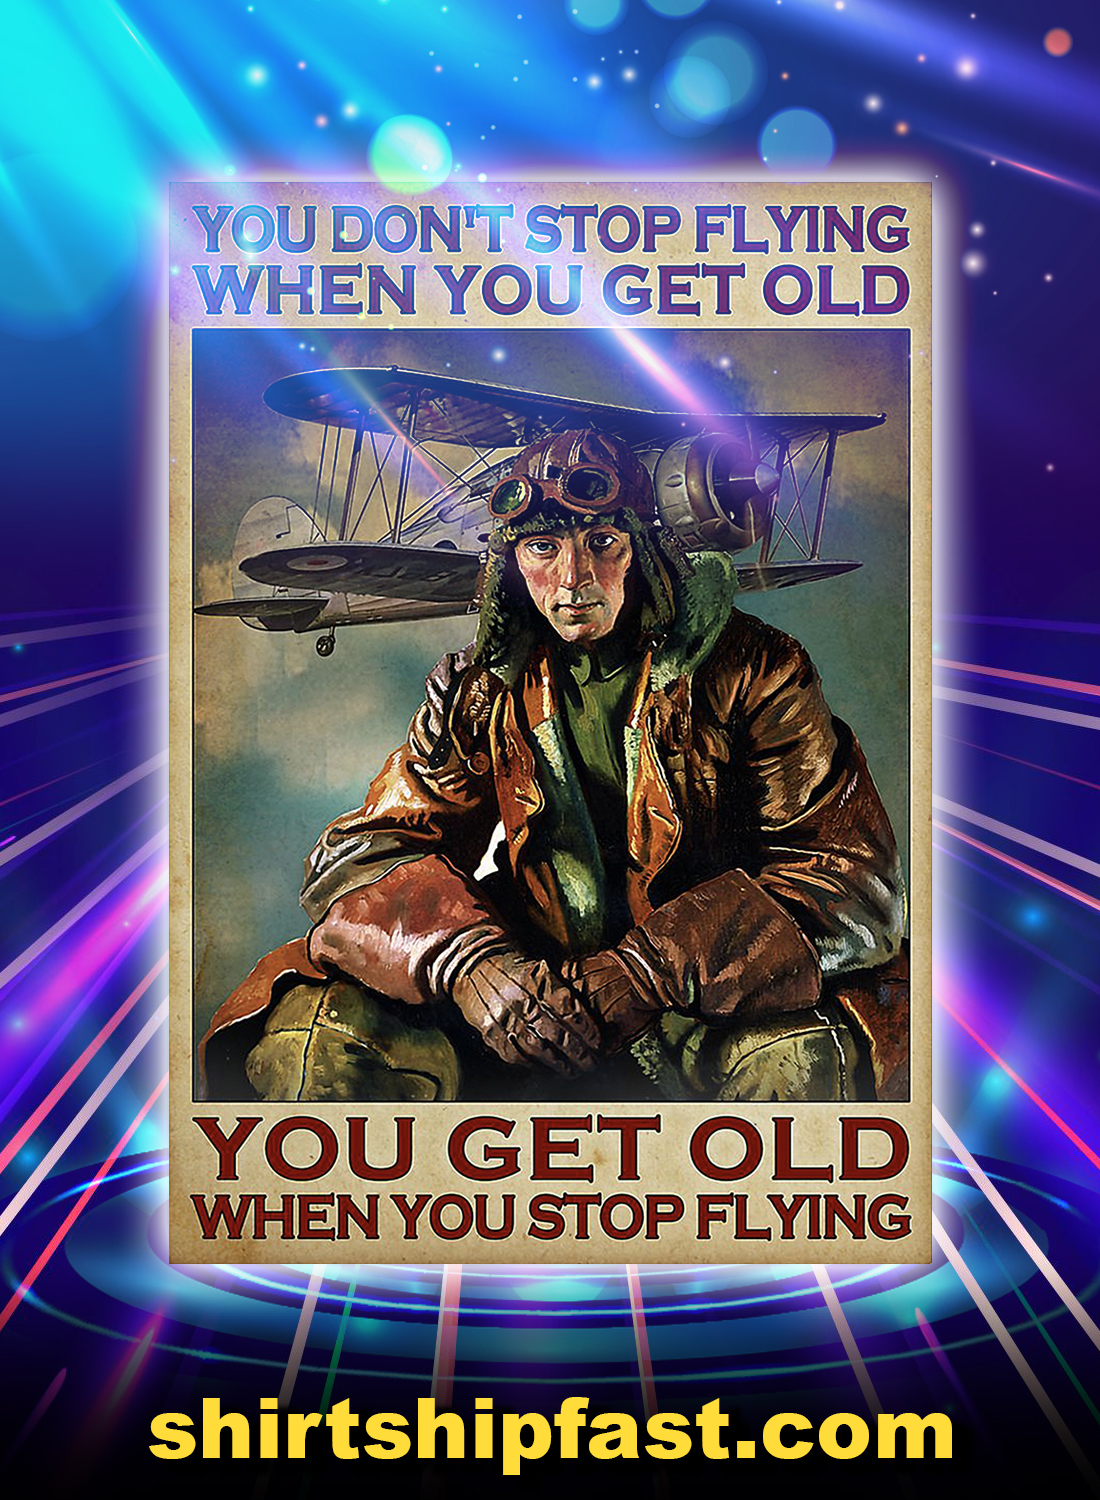 Poster Pilot you don't stop flying when you get old